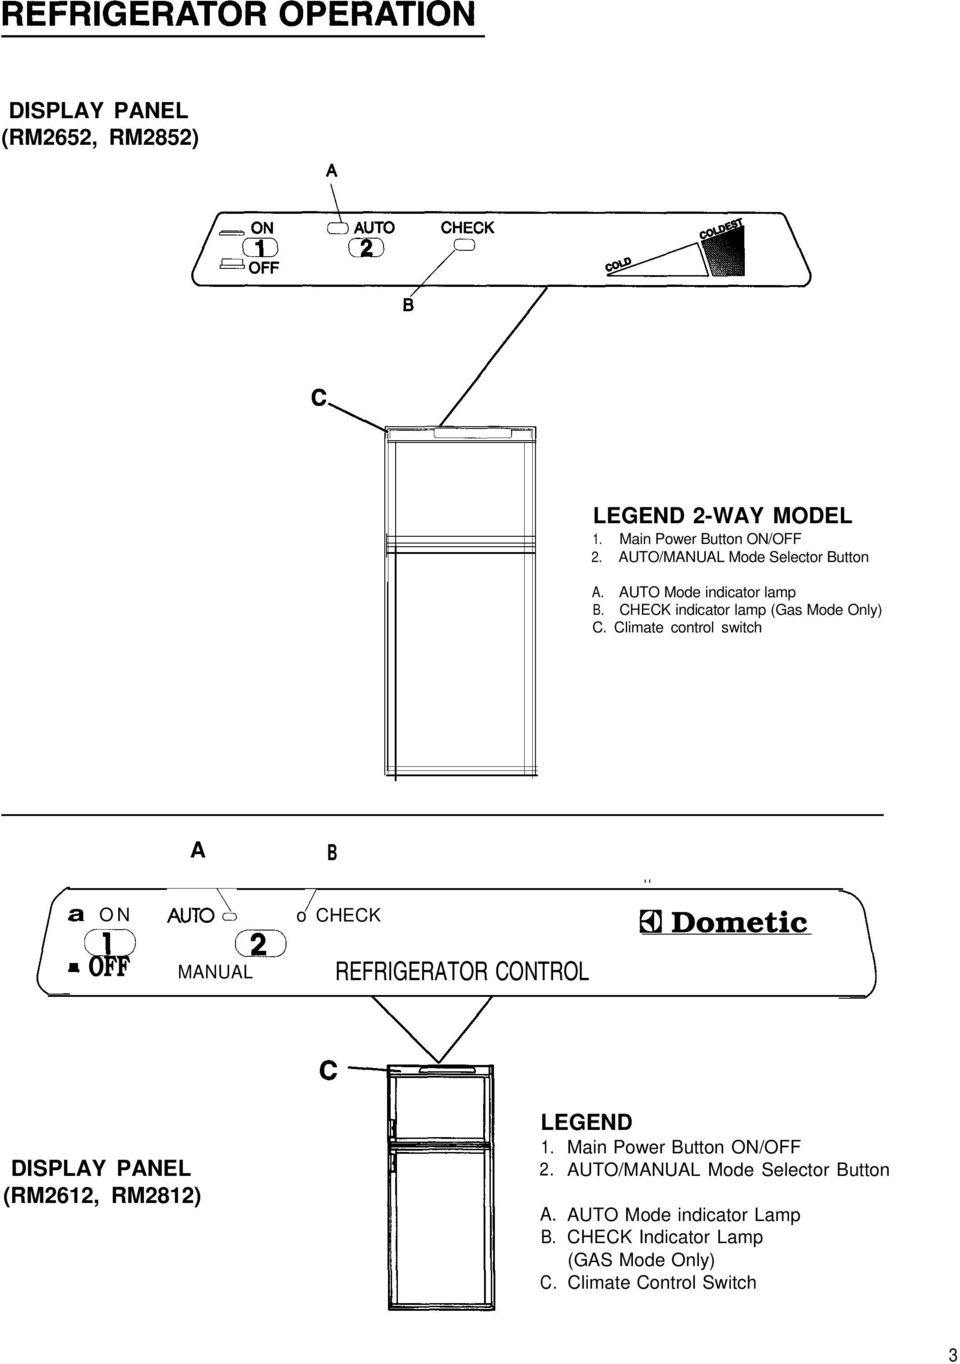 dometic rm2852 wiring diagram for led lights on trailer service tips refrigerators models os1927 4 96 copyright a o check off manual refrigerator control display panel rm2612 rm2812